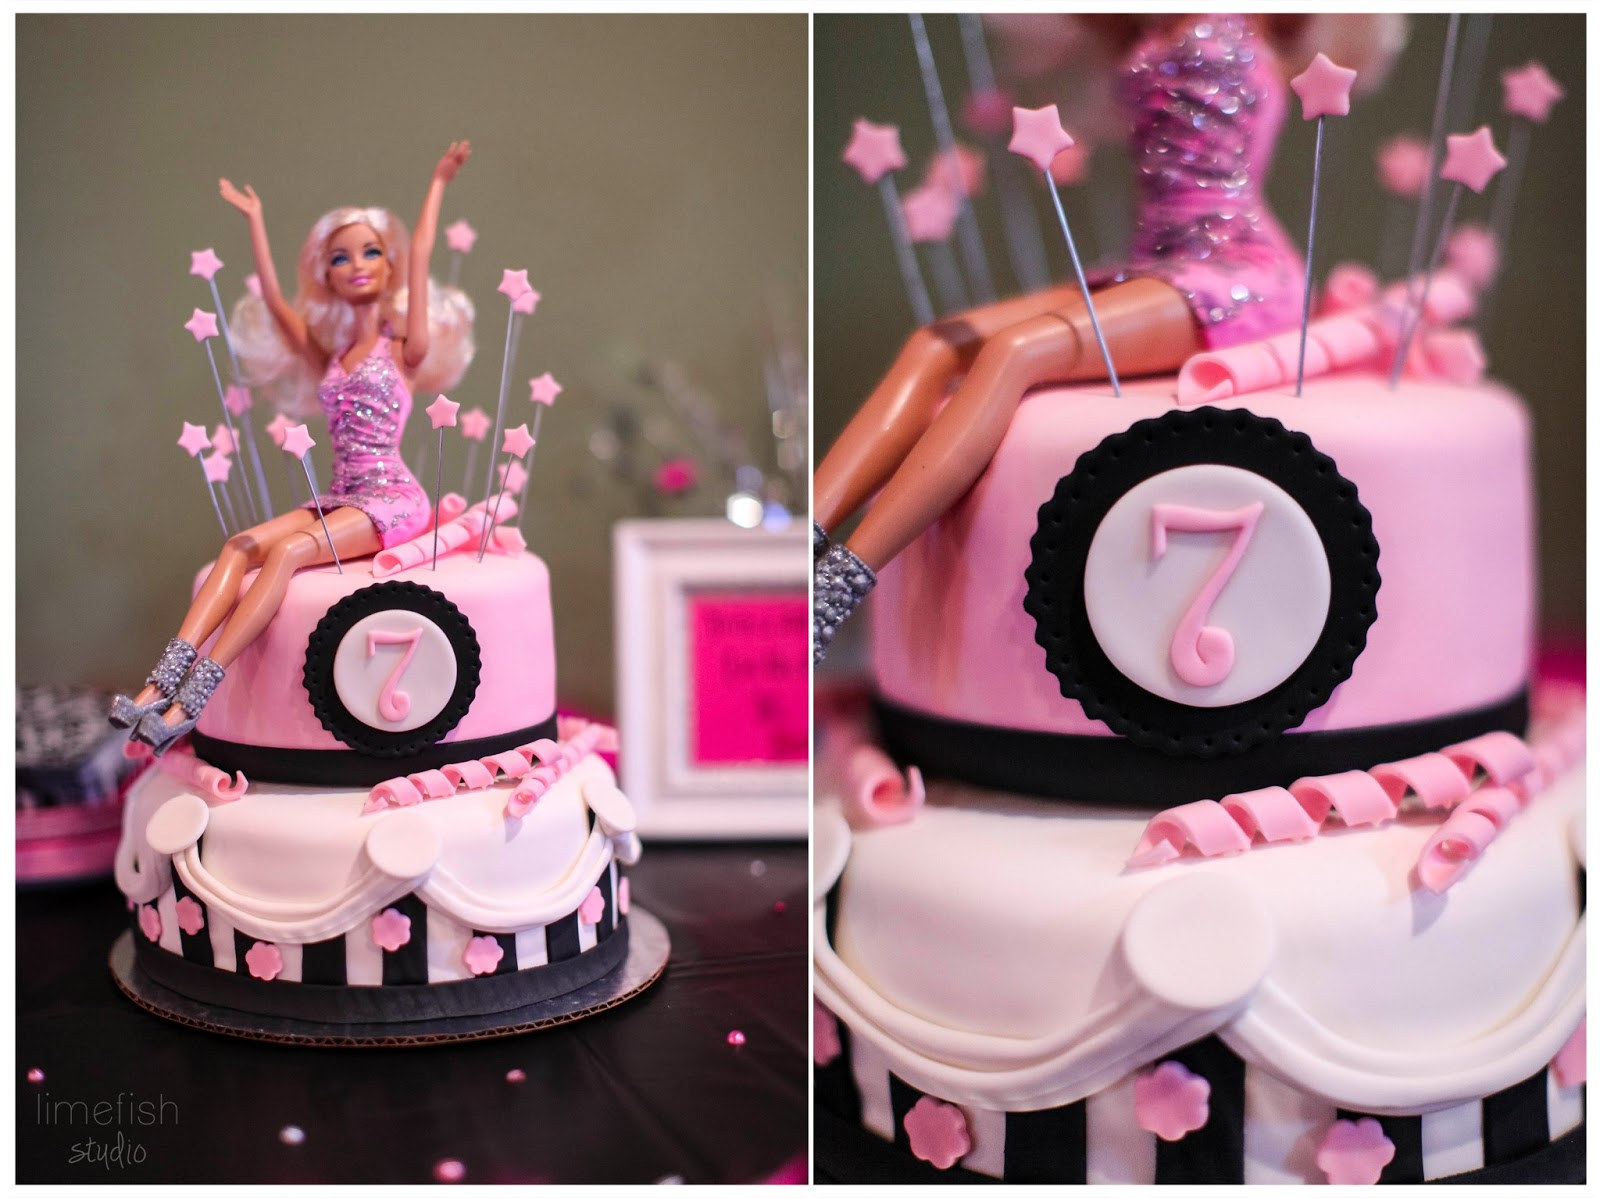 Limefish studio pink barbie birthday party photos for Decoration ideas 7th birthday party